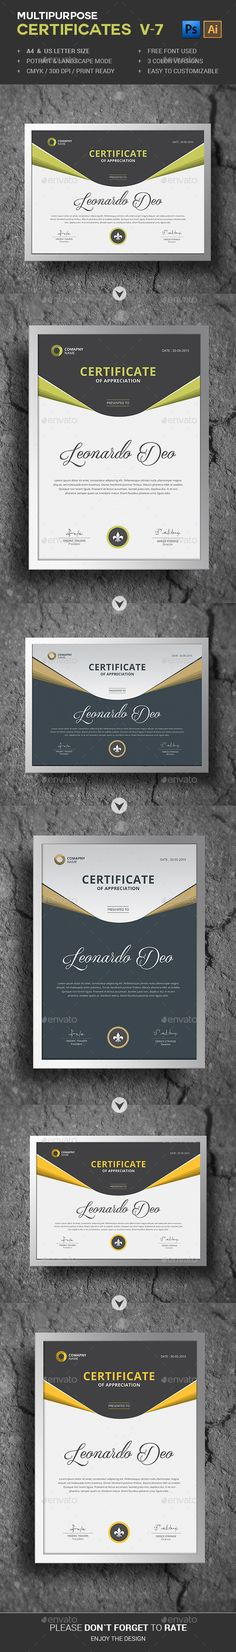 Multipurpose Certificates Template PSD, Vector AI. Download here: http://graphicriver.net/item/multipurpose-certificates/12743597?ref=ksioks